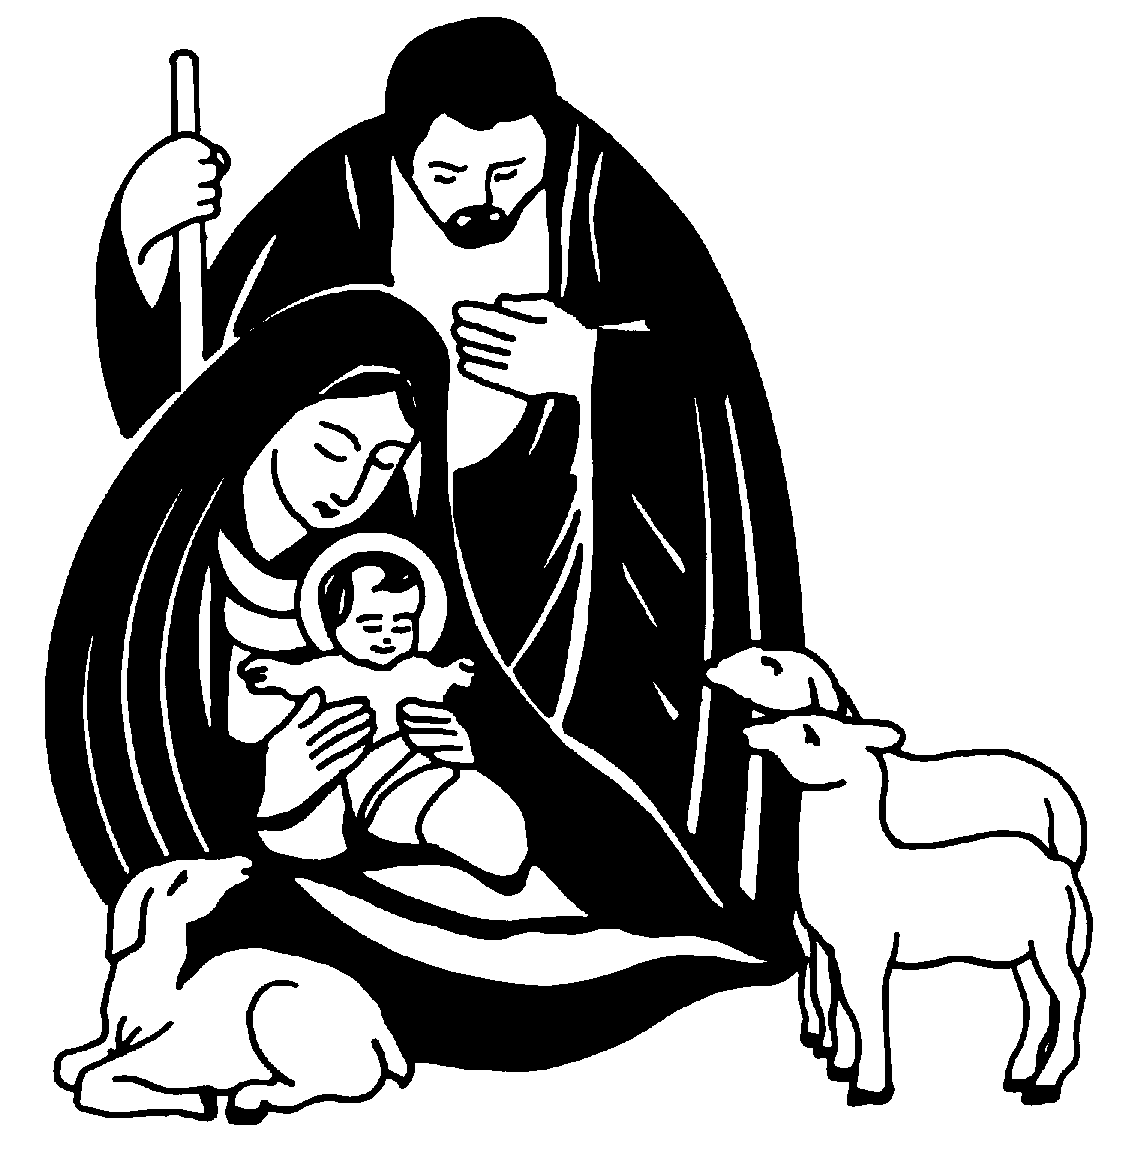 Christian Christmas Clip Art Black And White free image.